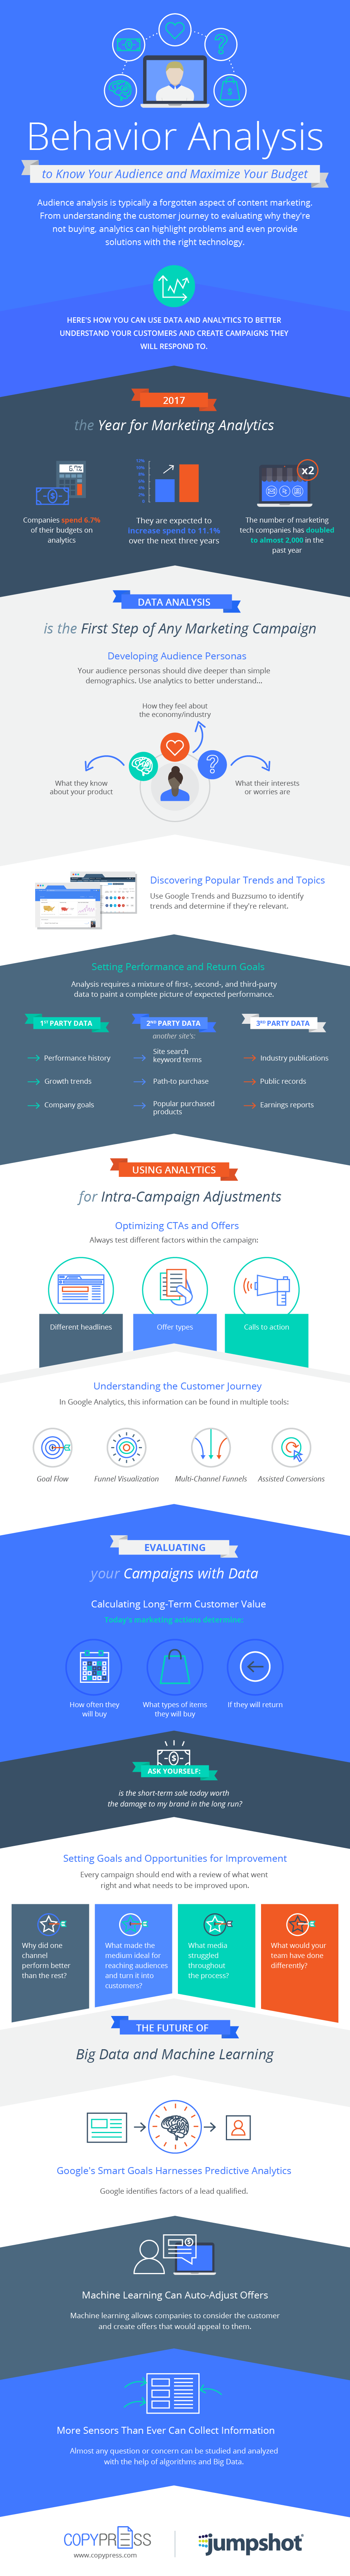 How Behavior Analysis Can Help You Increase Marketing ROI #Infographic